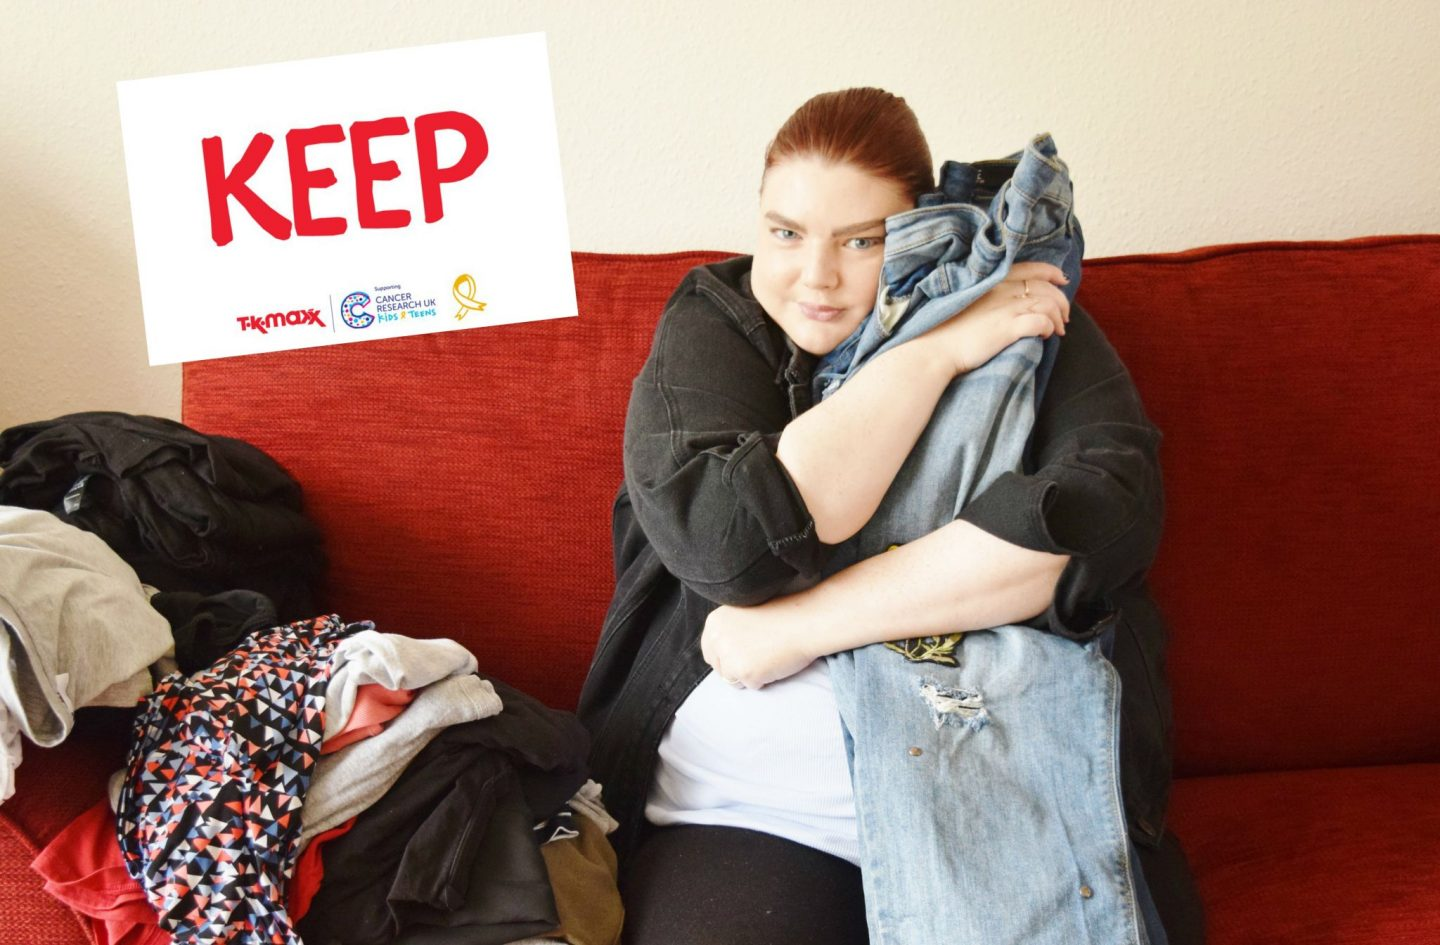 tk maxx give up clothes for good laura pearson-smith